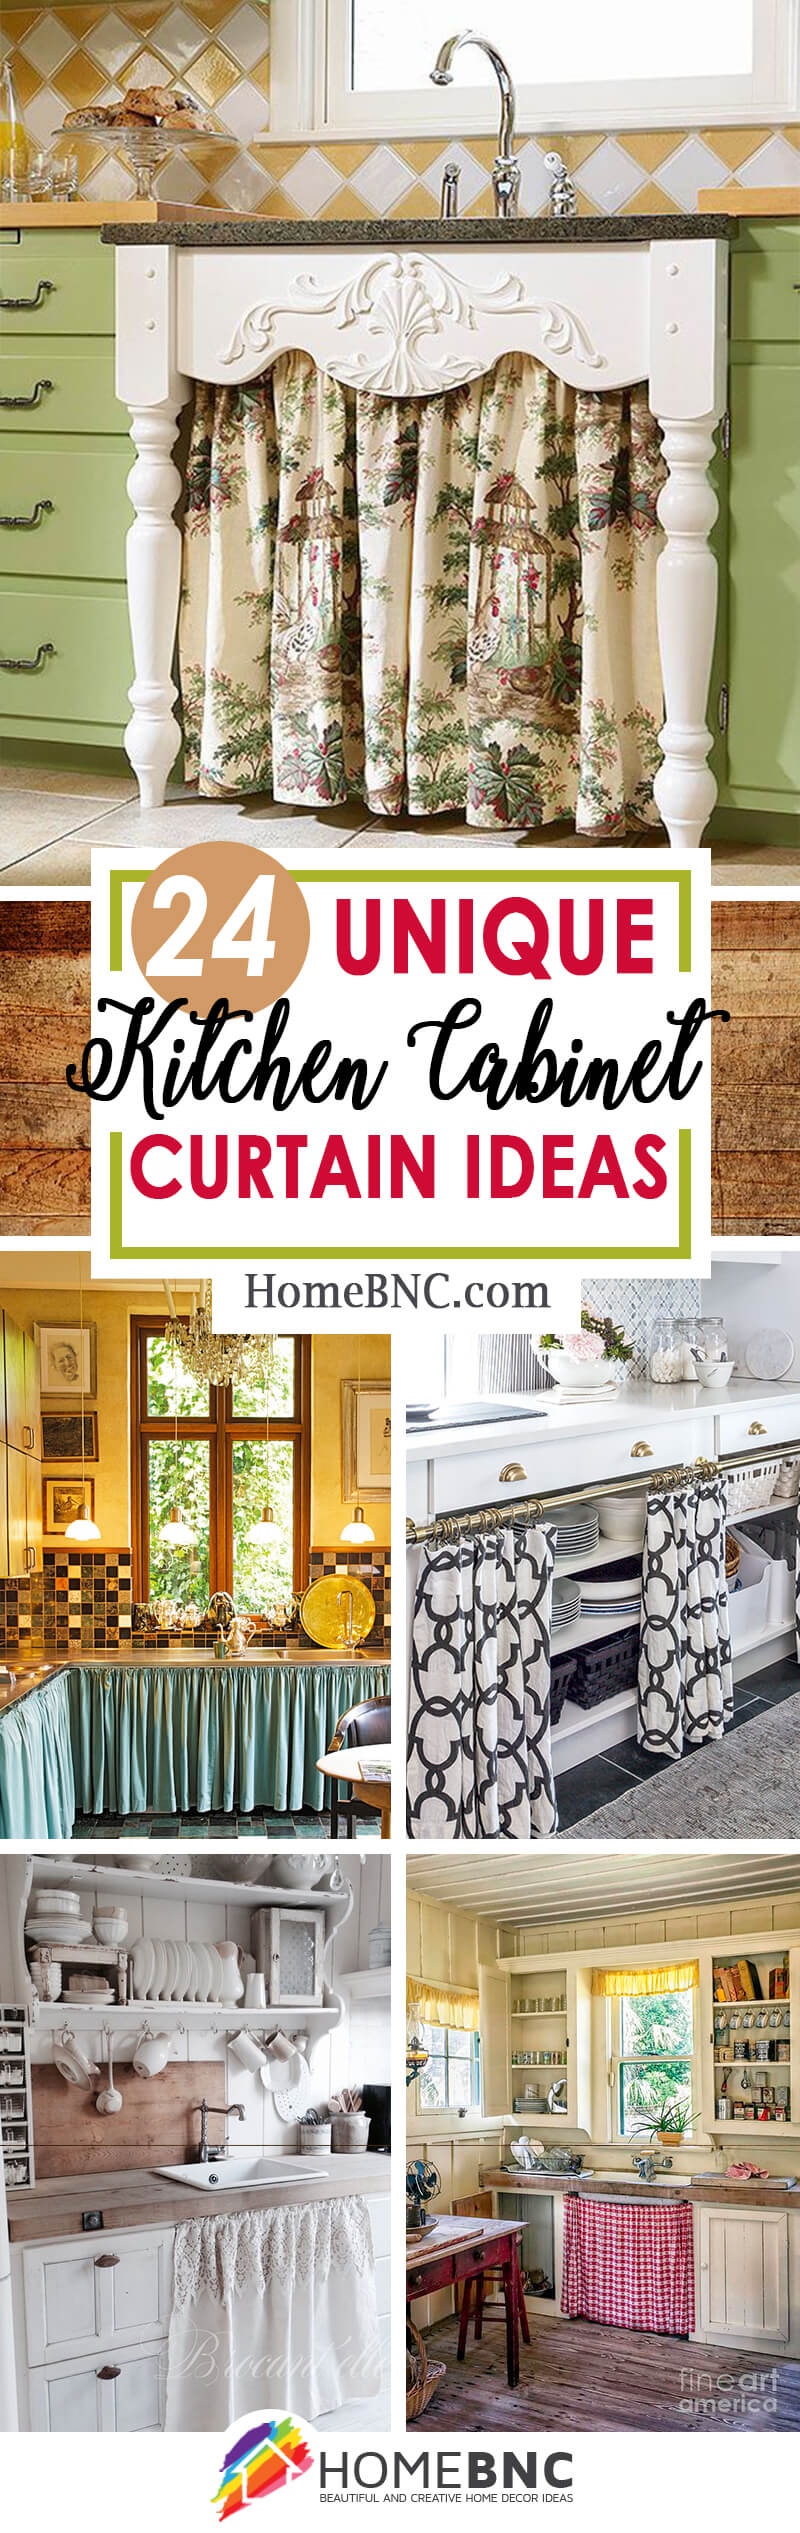 Kitchen Cabinet Curtain Ideas